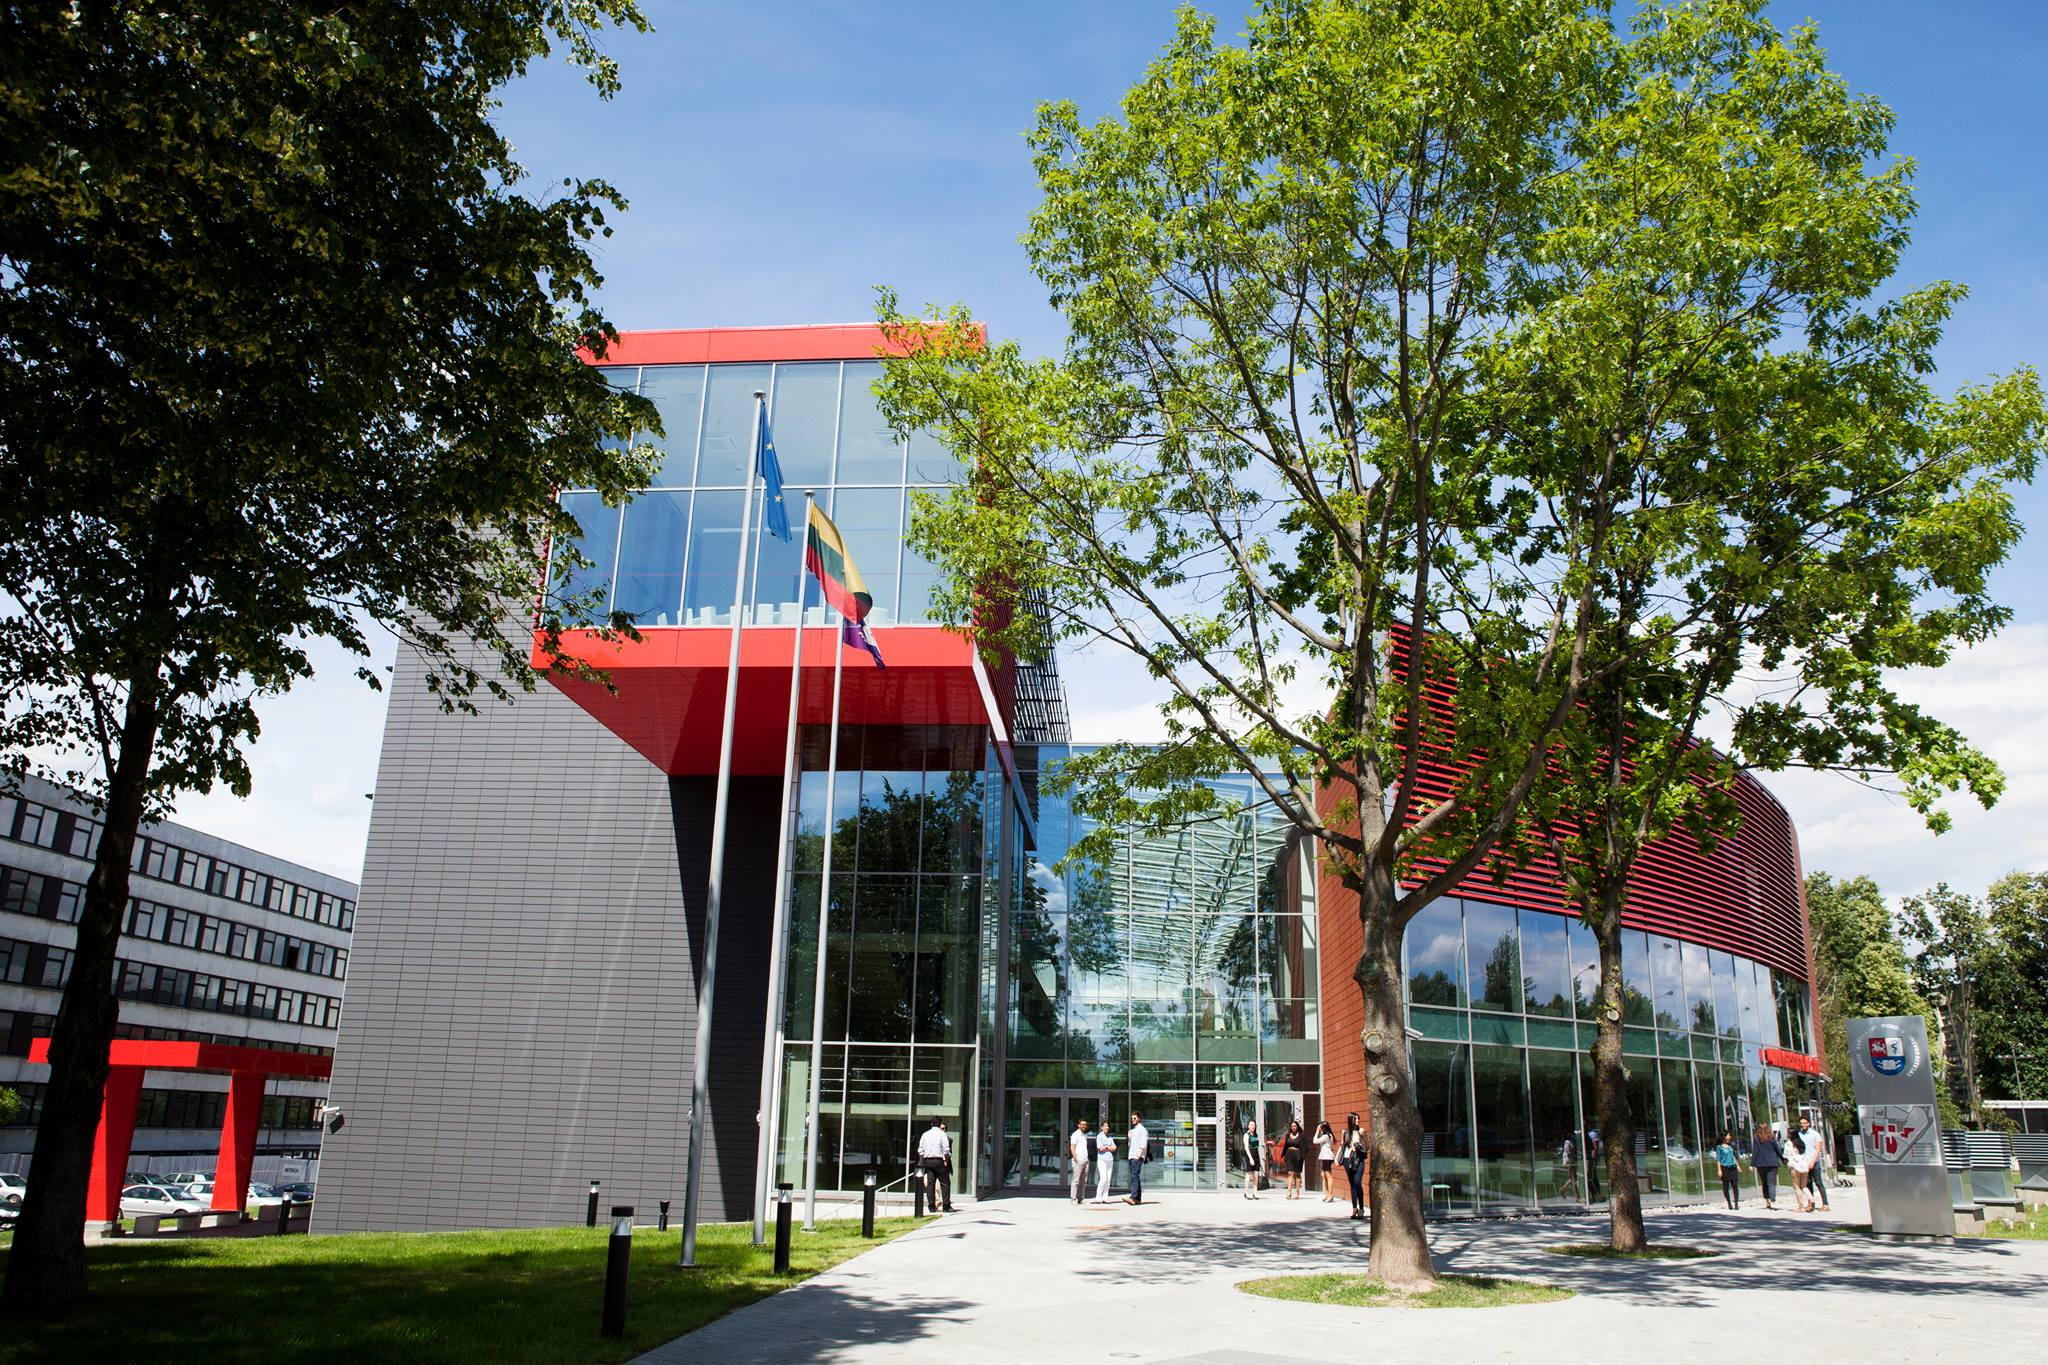 Lithuanian University of Health Science – LSMU Campus